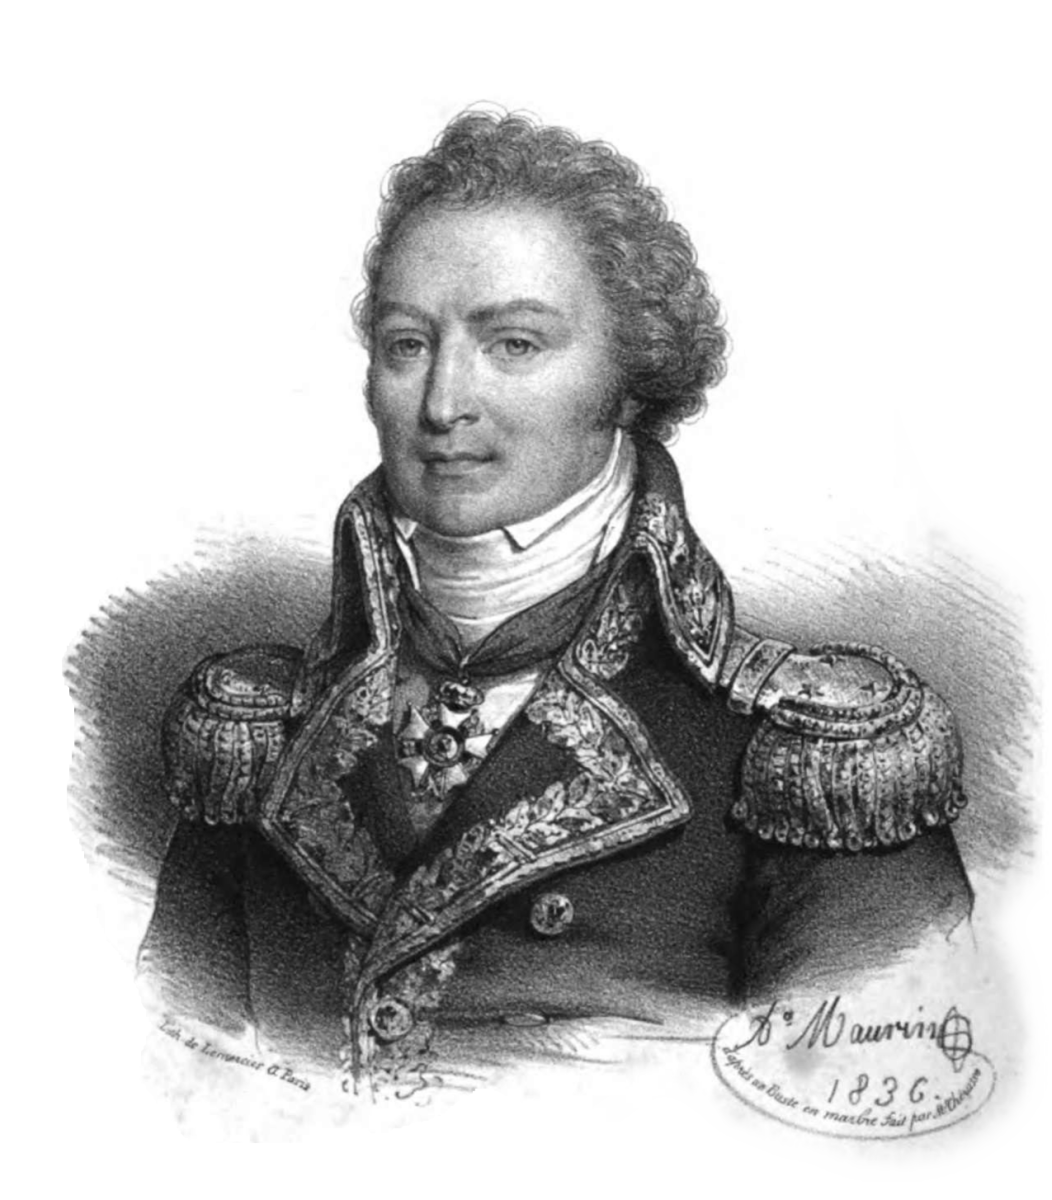 Latouche Tréville - perhaps the French fleet would have had a happier fate if he had been in command rather than the depressed and despondent Villeneuve!